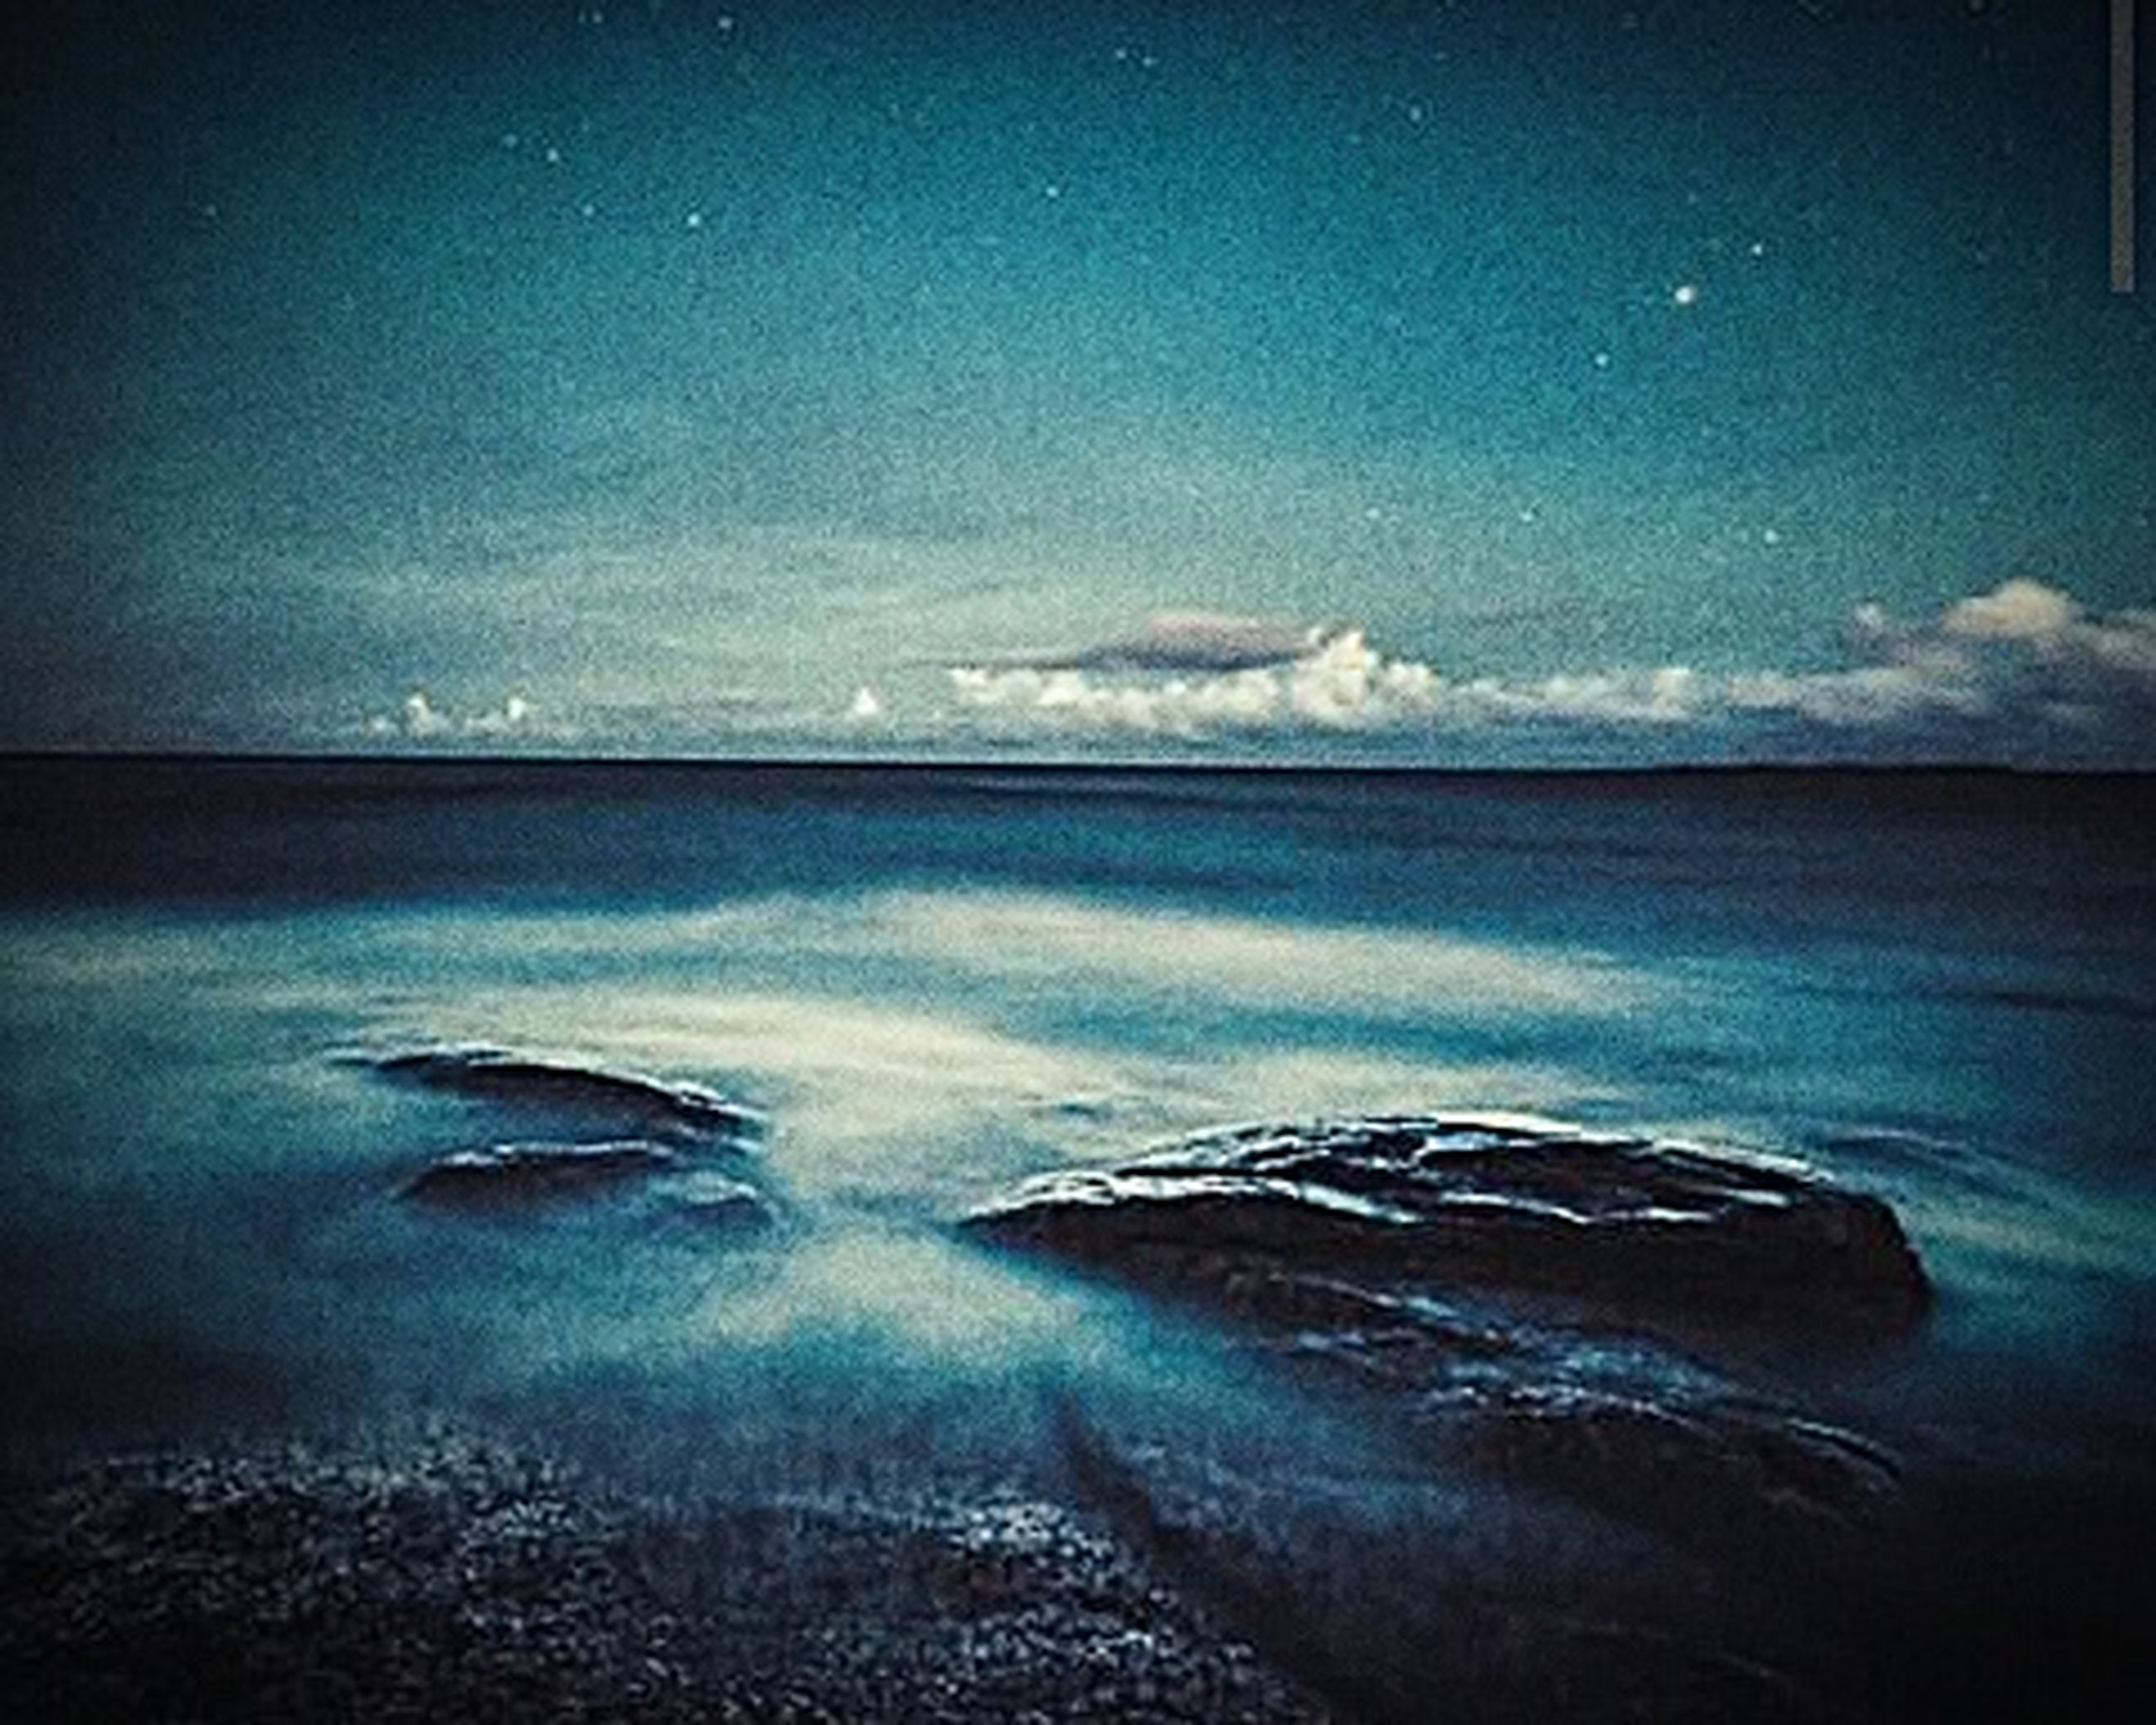 water, sea, scenics, horizon over water, beauty in nature, tranquil scene, blue, tranquility, nature, beach, sky, wave, shore, idyllic, auto post production filter, surf, coastline, no people, outdoors, ocean